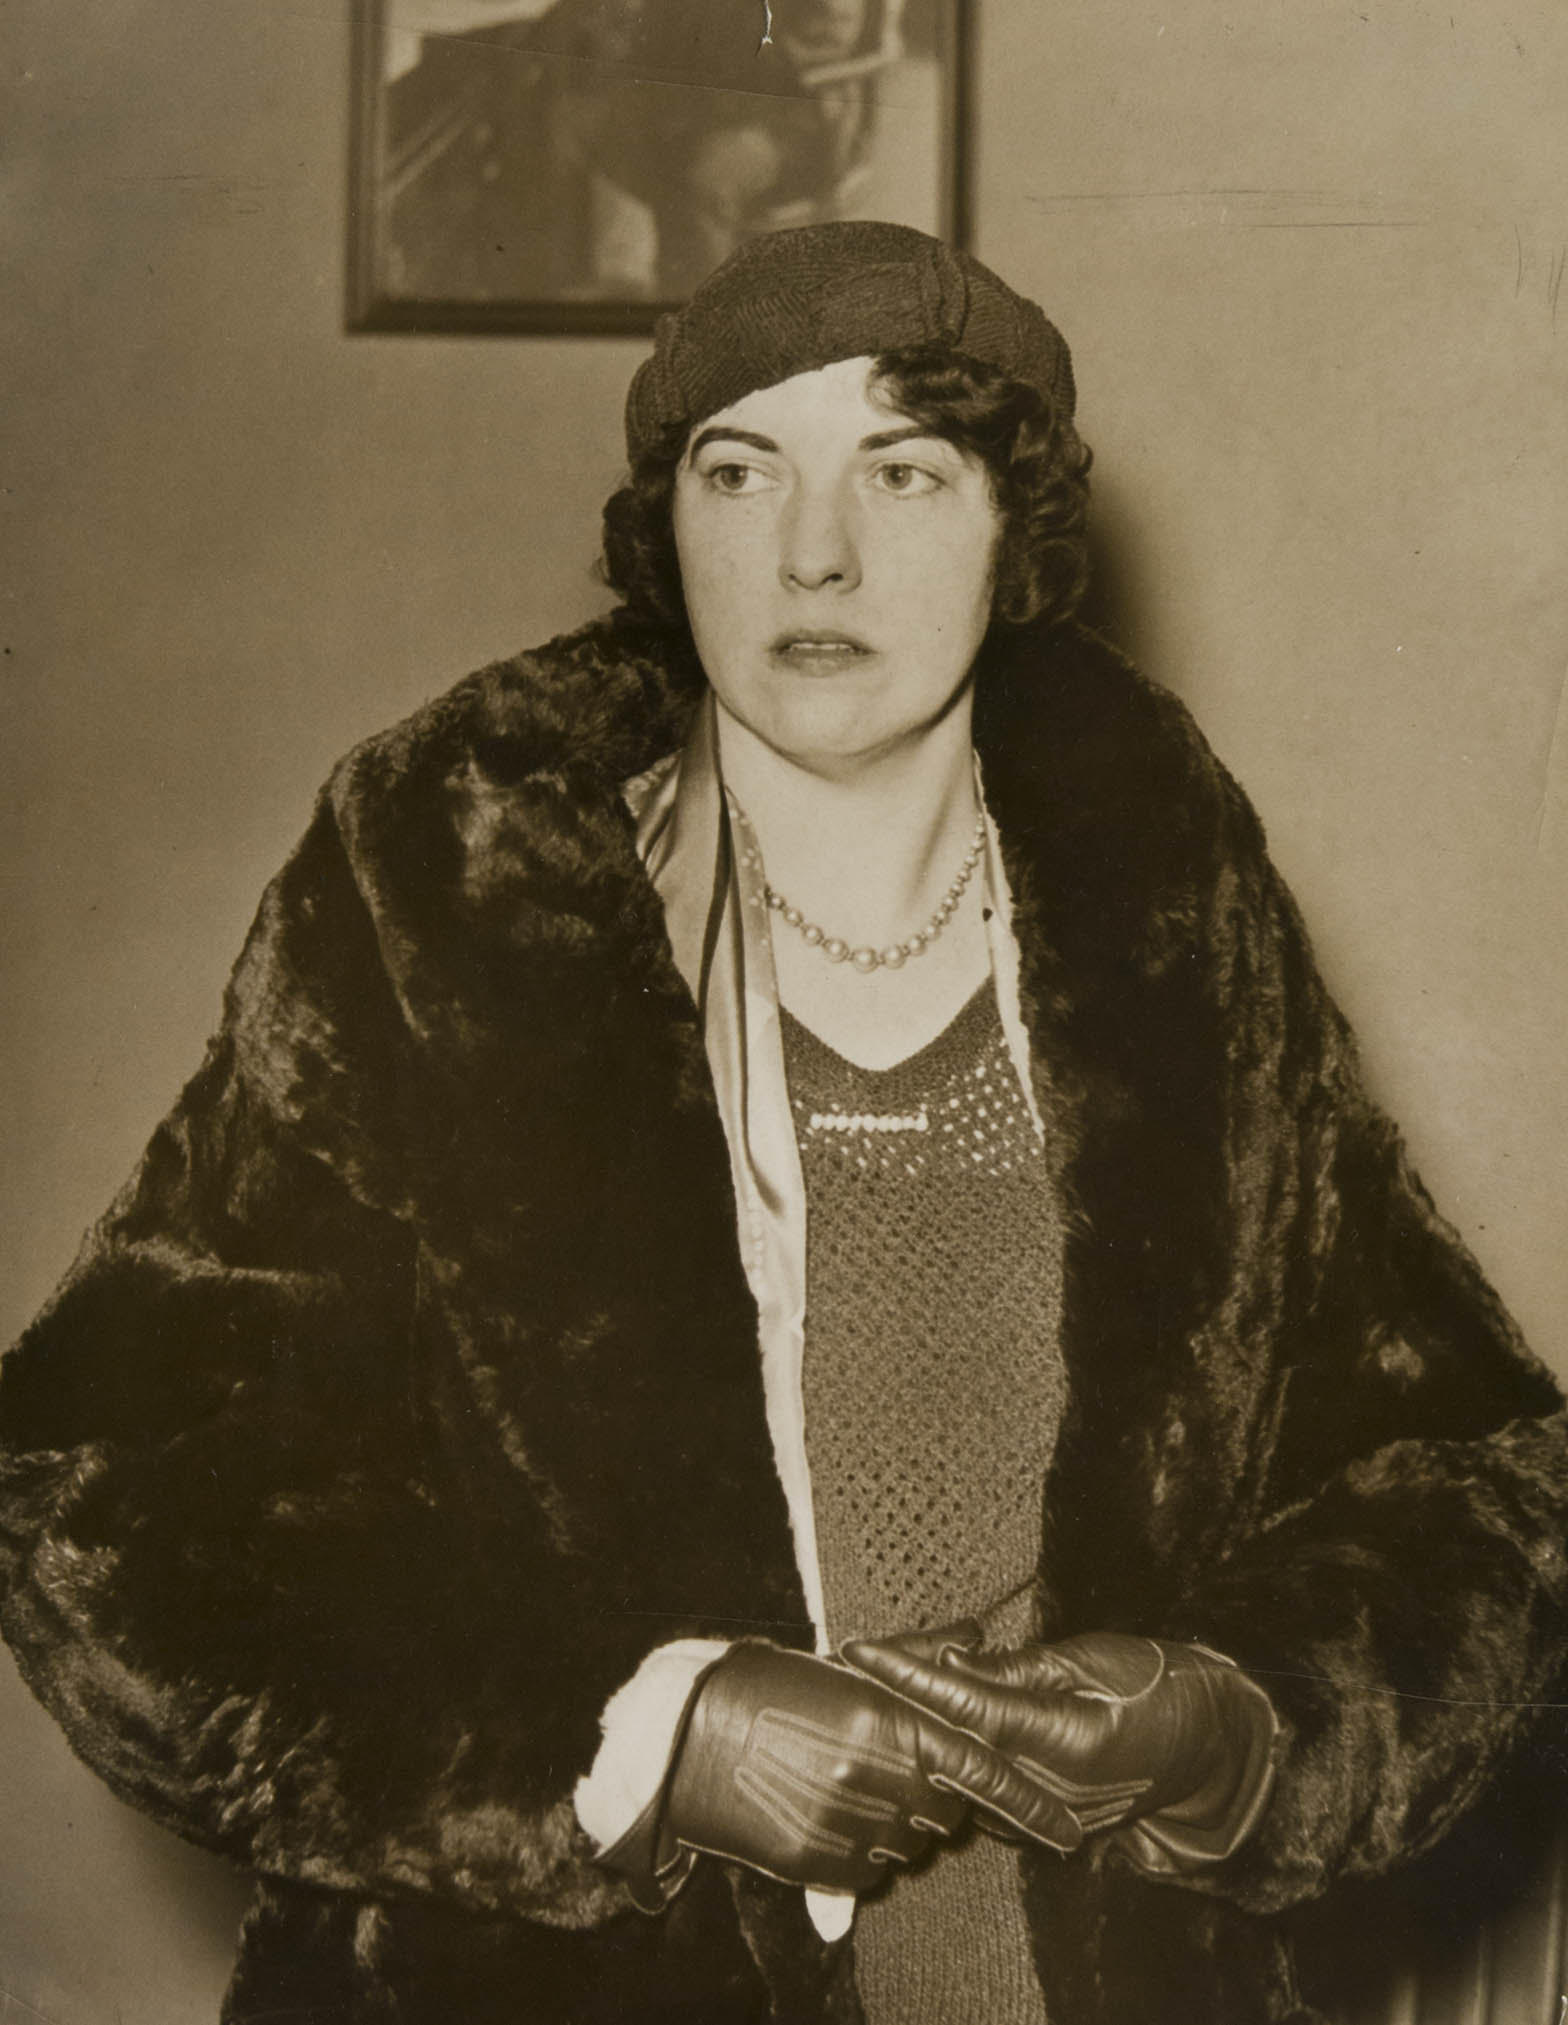 Evelyn Hazen outside courtroom in Covington, KY, 1937 - courtesy Knoxville News Sentinel